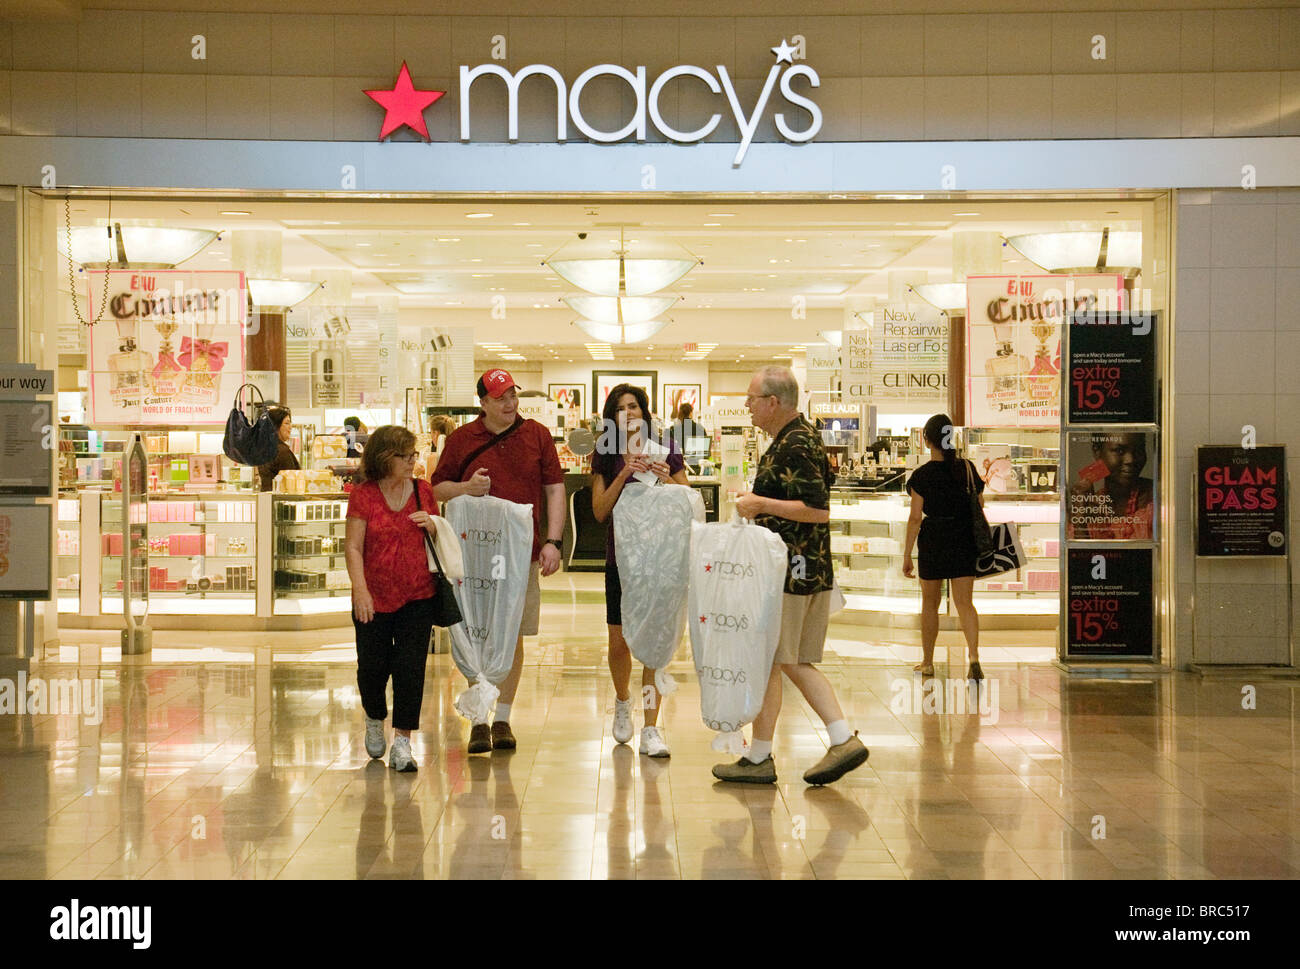 People coming out of Macys department store having bought goods, Fashion Show Mall, Las Vegas USA Stock Photo